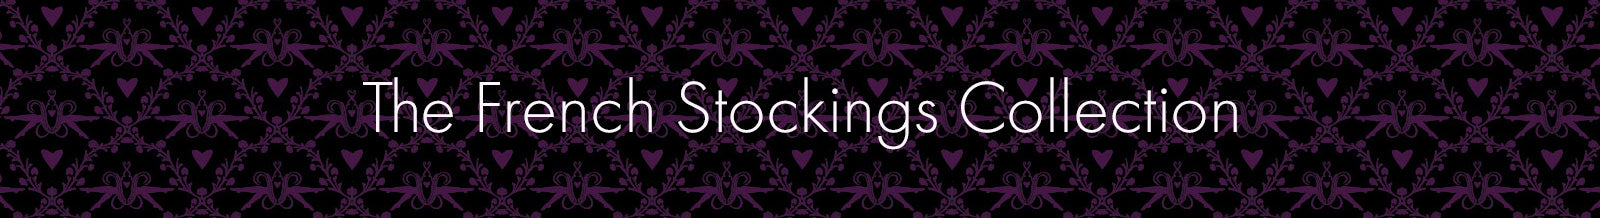 Luxury French stockings from Mayfair Stockings